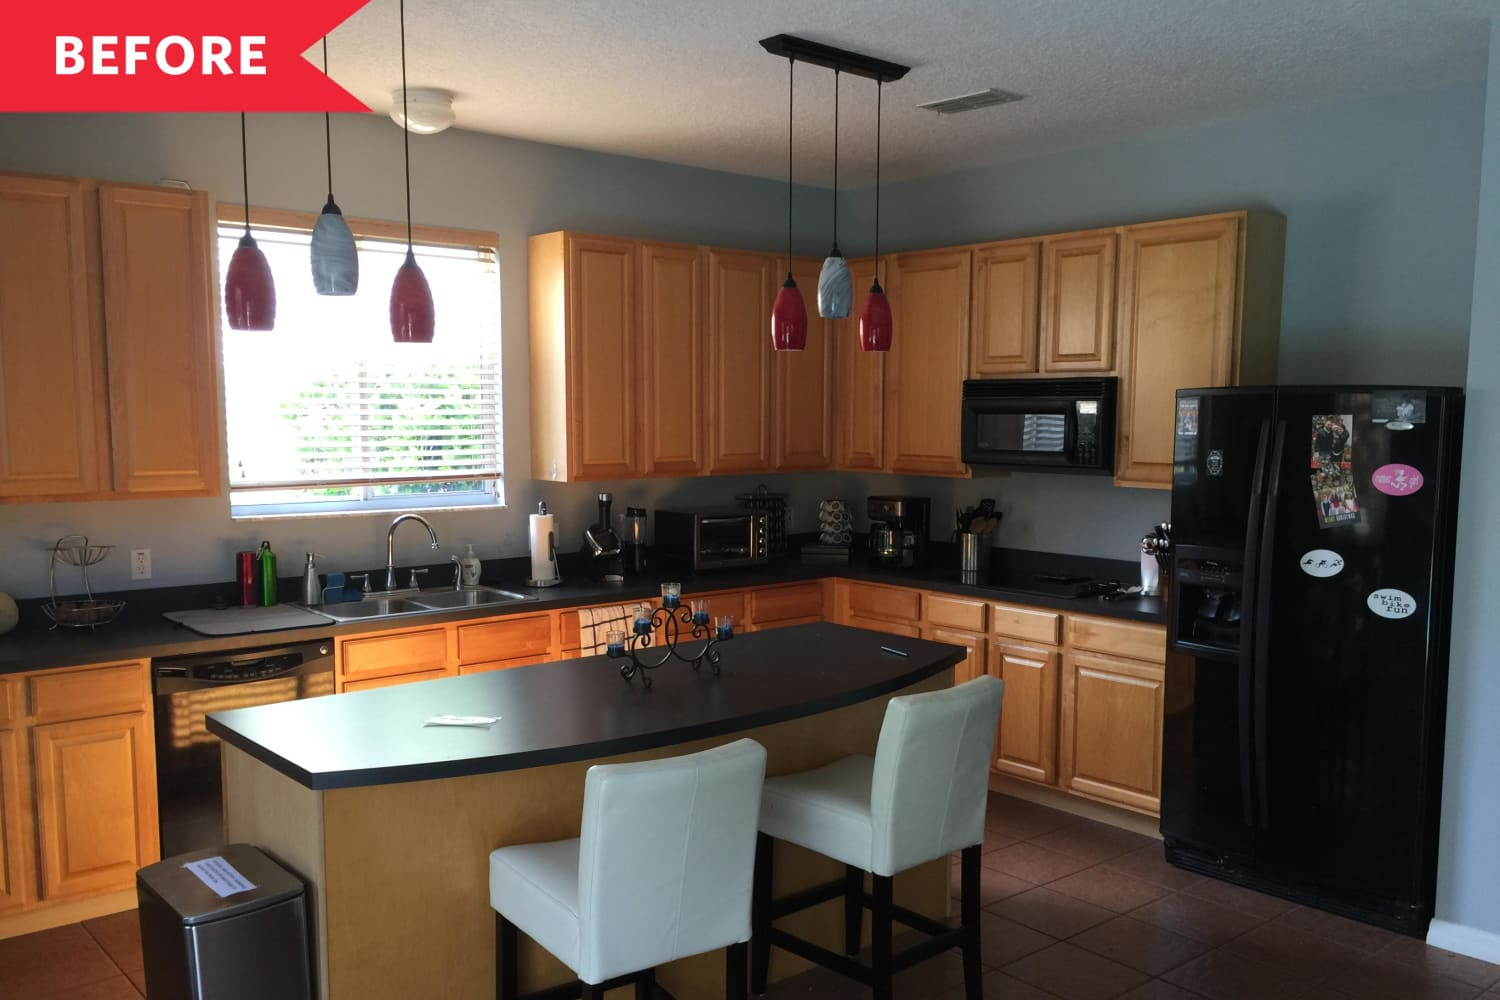 Before and After: A Sleek $25,000 Revamp Takes This Kitchen Out of the 2000s